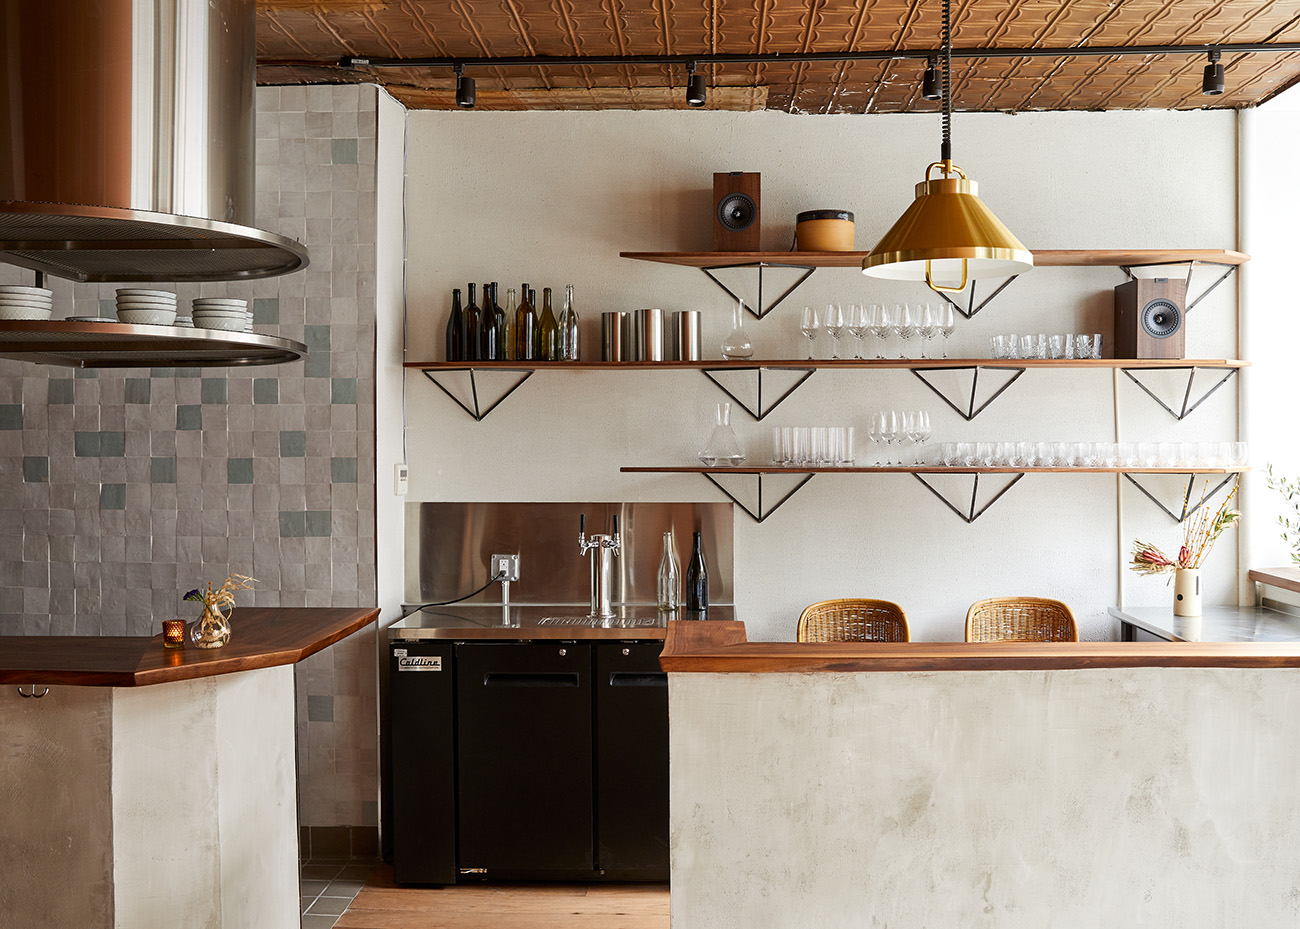 Simple interiors are grounded in location via tin plate ceilings and tiles by local studios